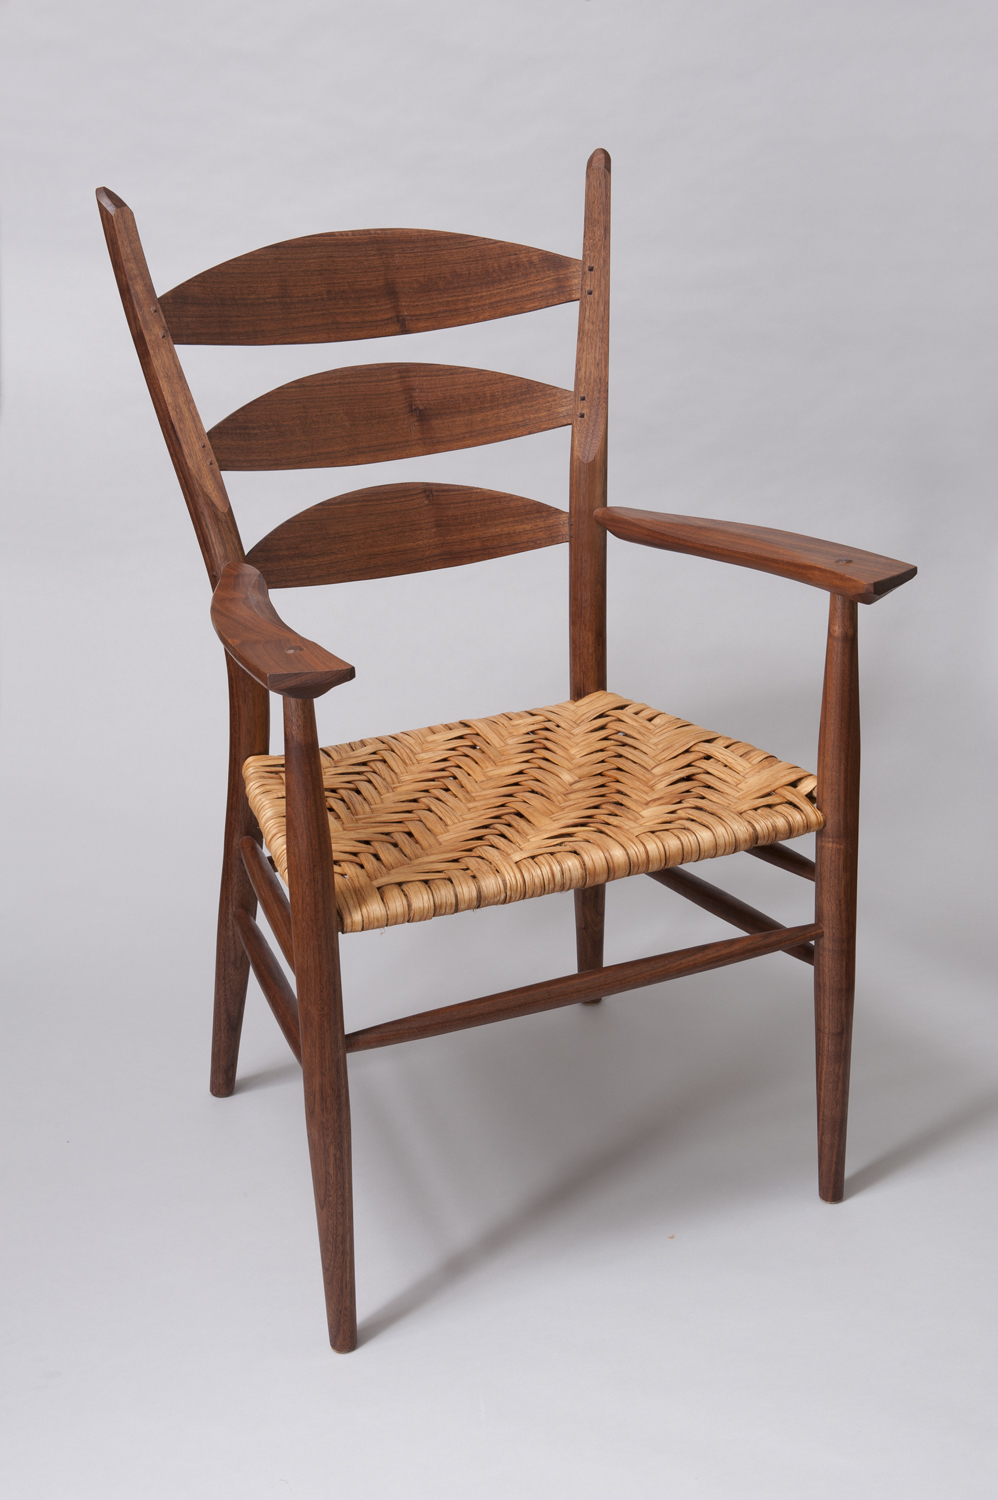 ... Is A Contemporary Version Of A Ladderback Arm Chair. The Chair Is Built  In American Black Walnut With A Natural Hickory Bark Woven Seat.